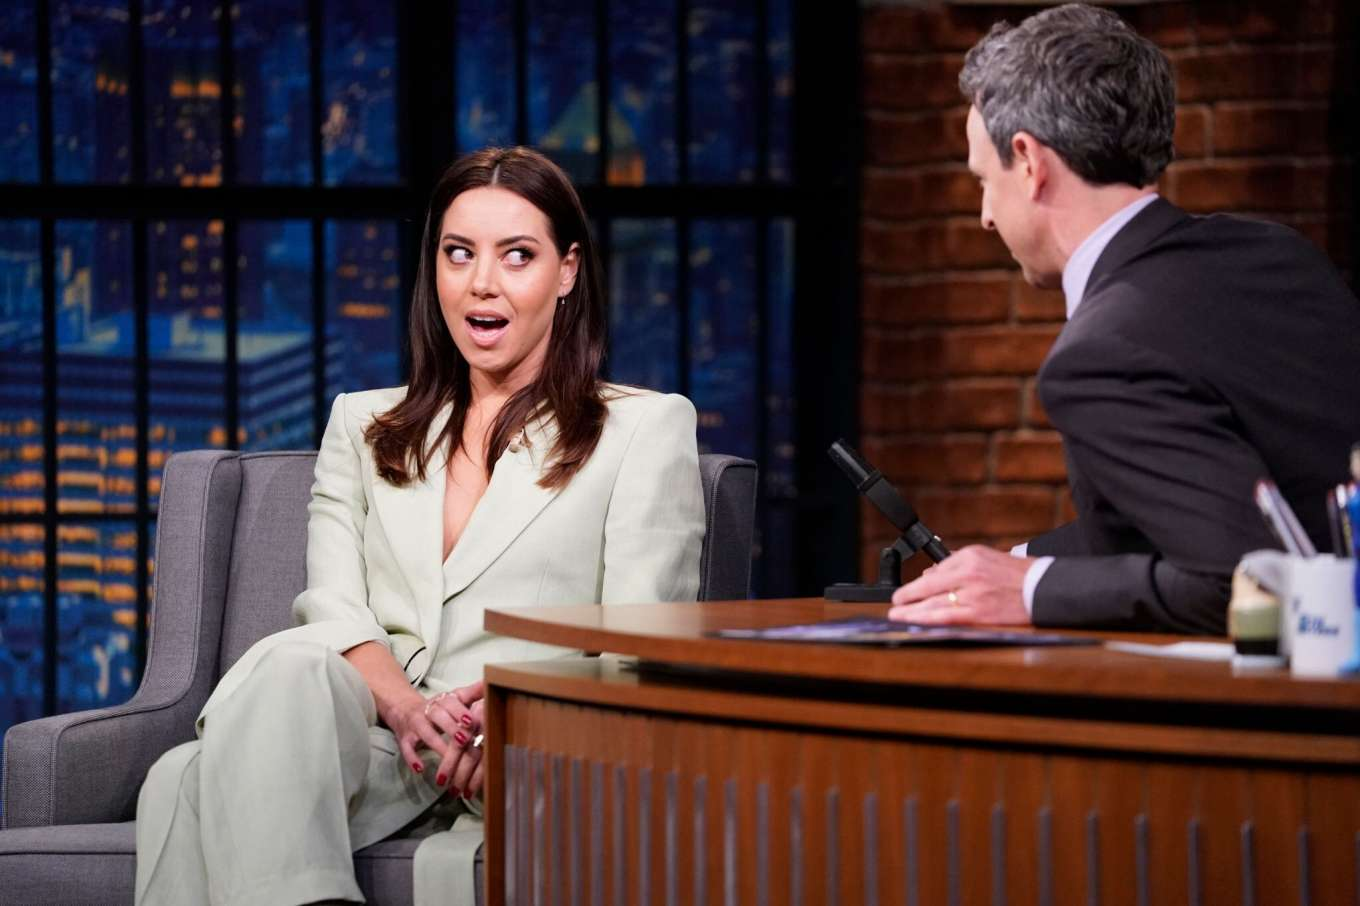 Aubrey Plaza - On 'Late Night with Seth Meyers' in New York City